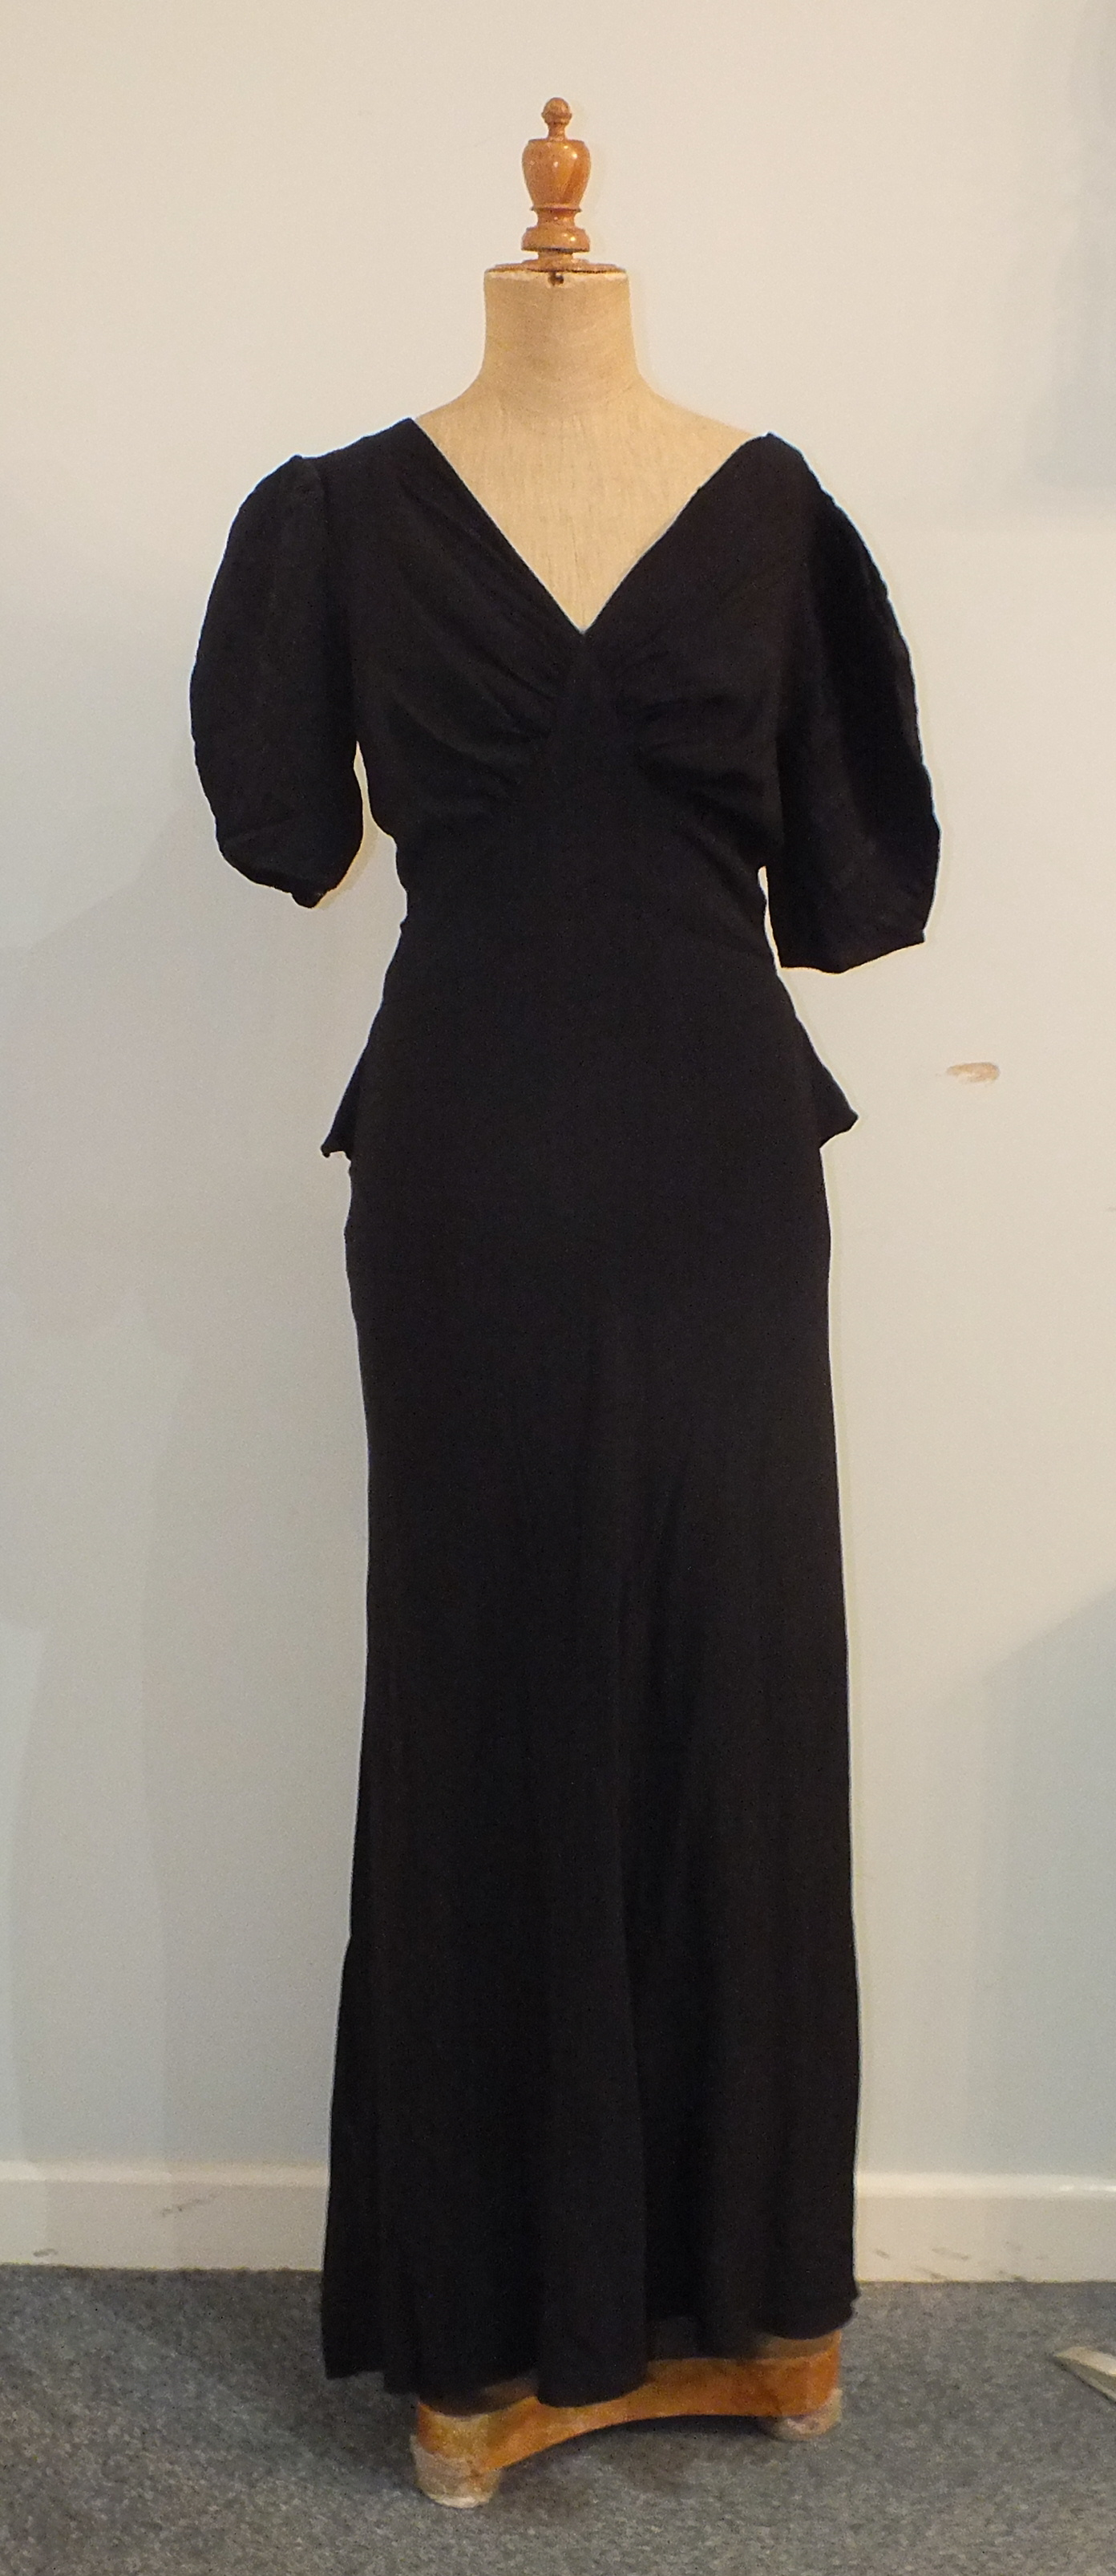 Five 1930's/1940's evening dresses including a black and white printed silk chiffon dress with black - Image 4 of 6